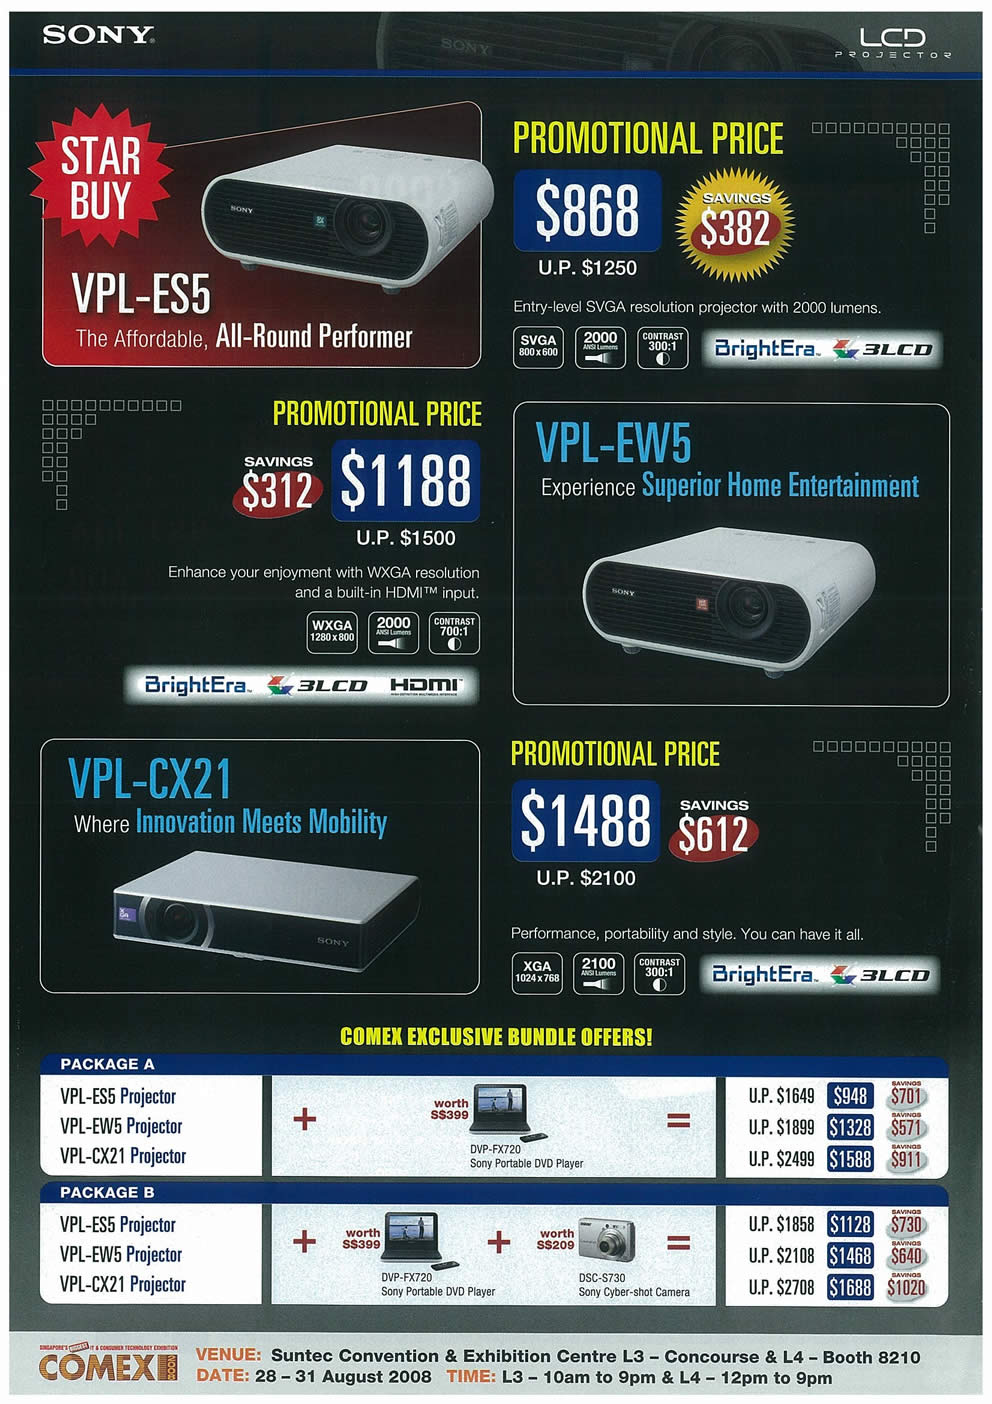 Comex 2008 price list image brochure of Sony LCD Projectors Page 1